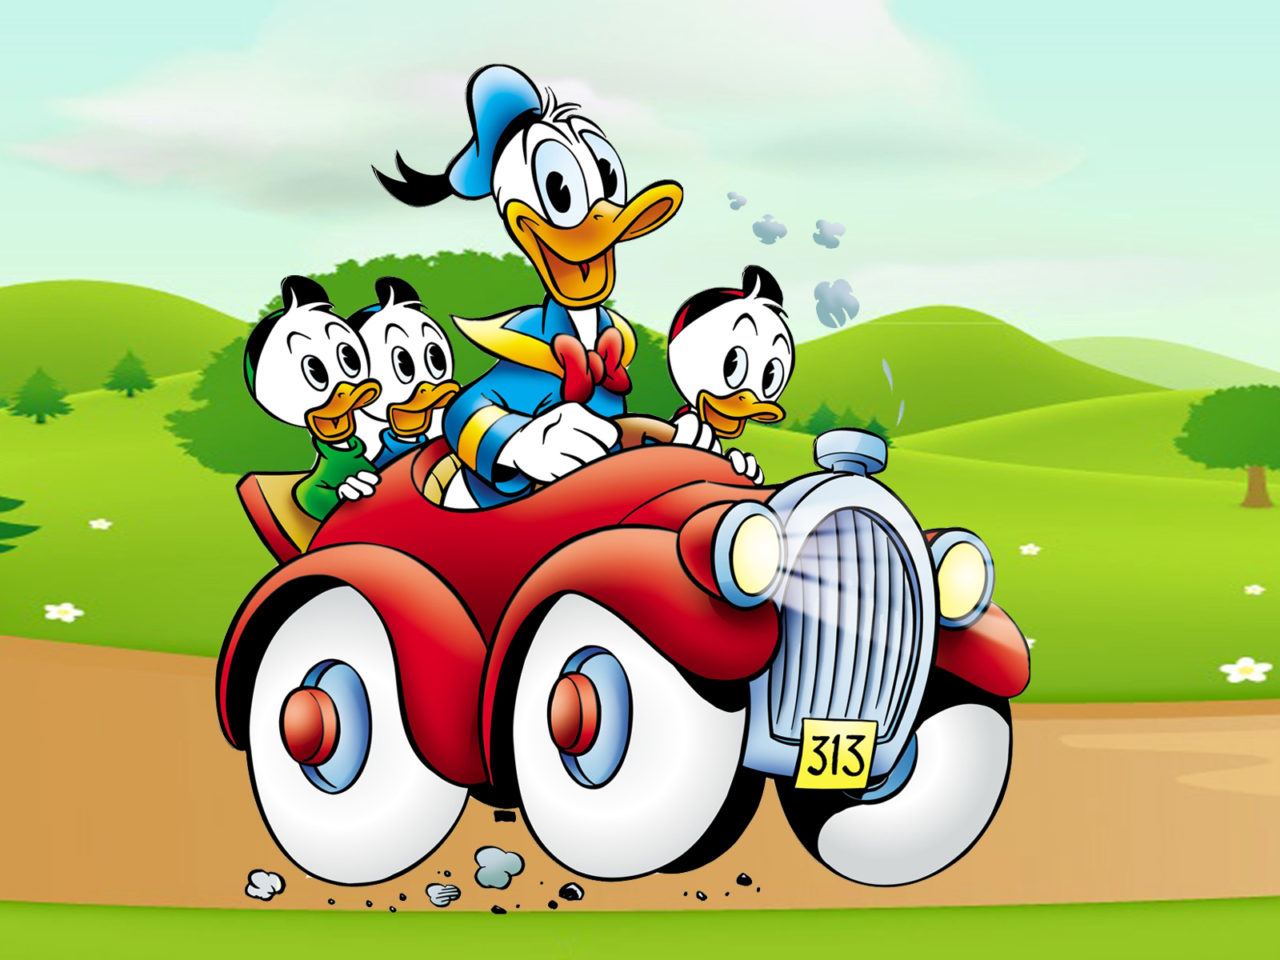 Daisy Iphone Wallpaper Donald Duck Cartoon Image Driving Car Country Road Desktop